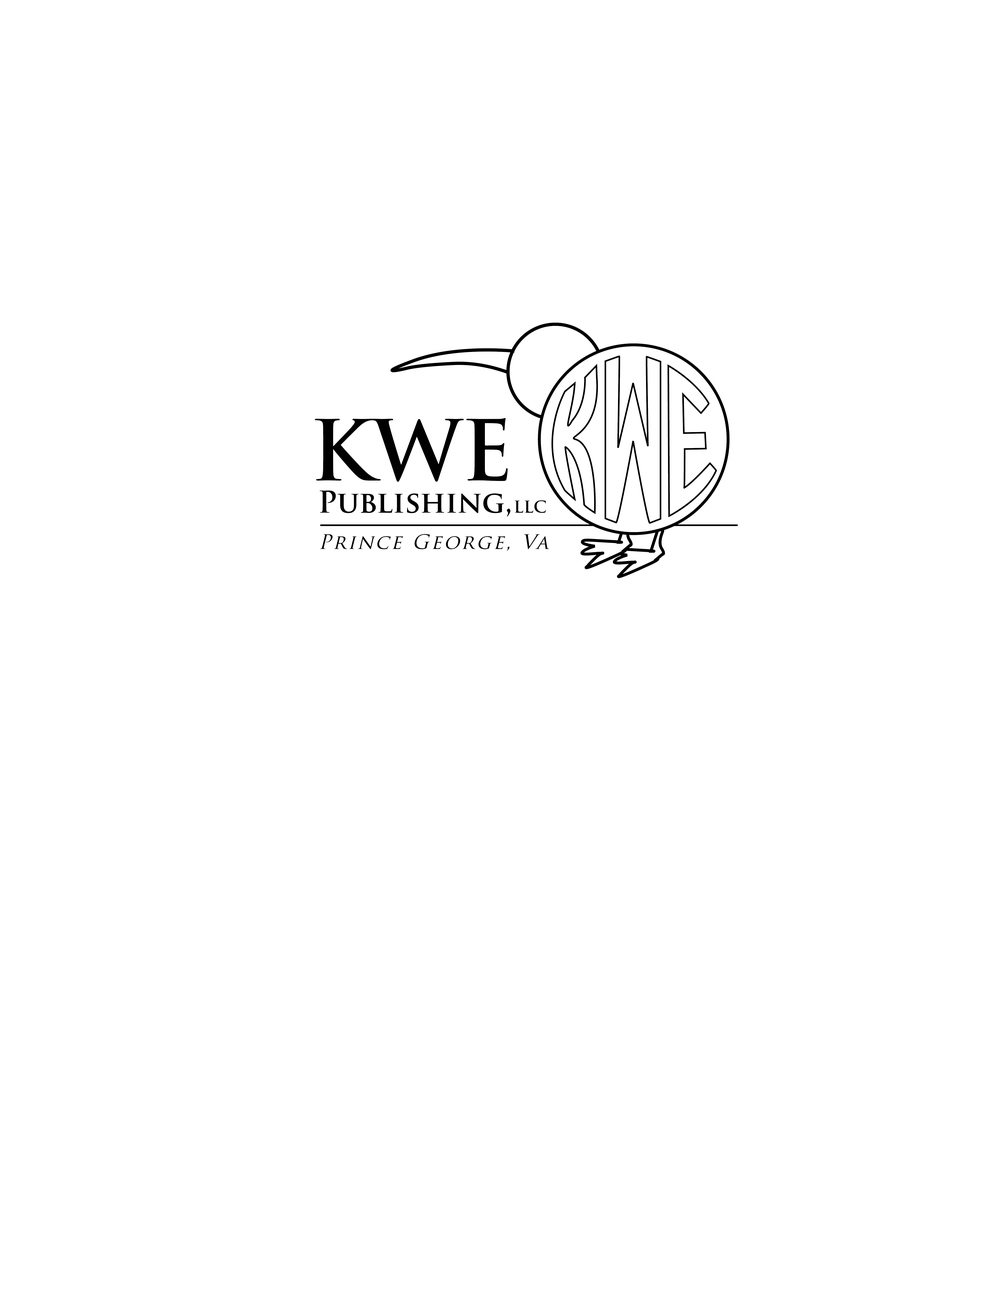 KWE Publishing Logo 600dpi.jpg